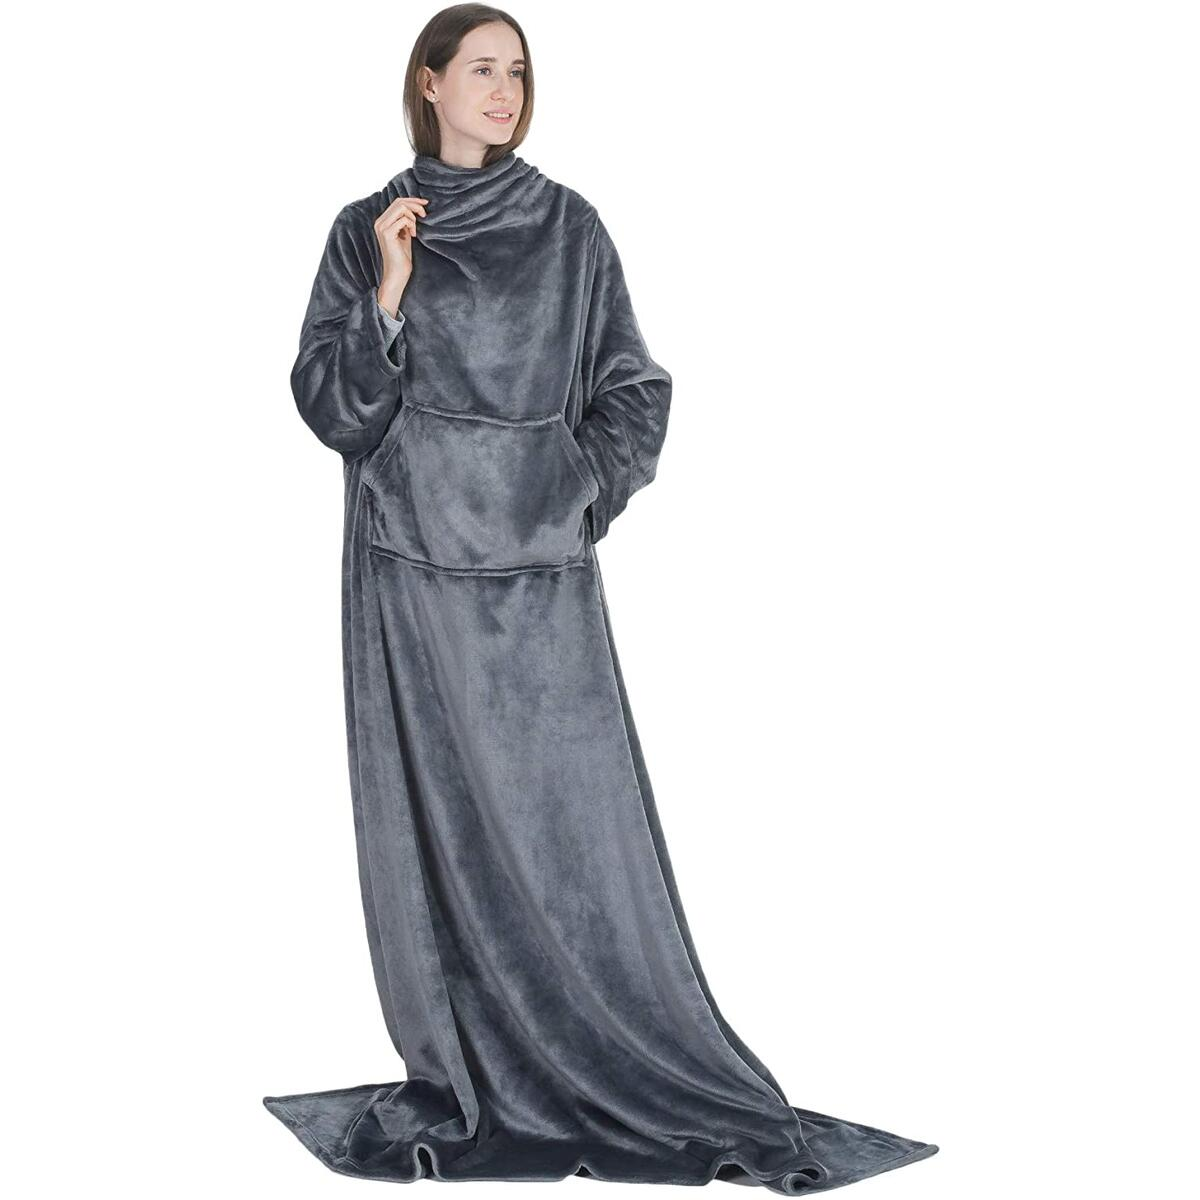 Wearable Blanket Snuggle with Sleeves and Pocket